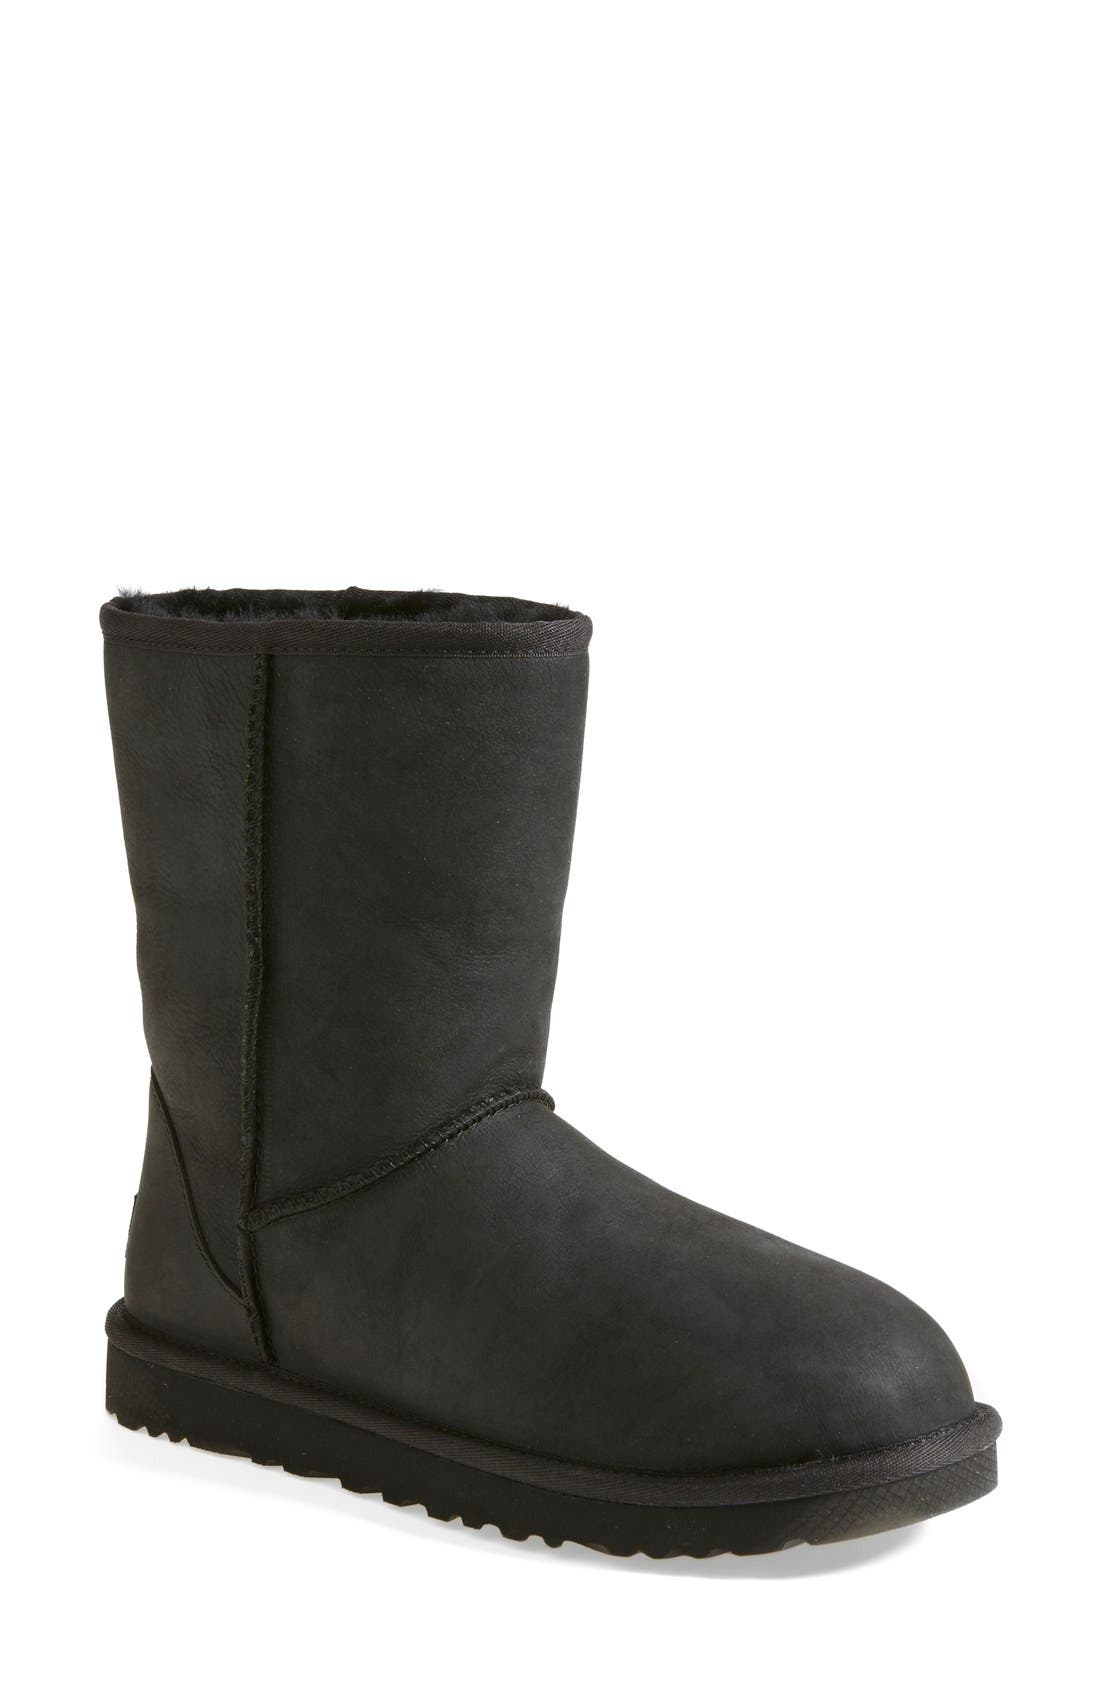 'Classic Short' Leather Water Resistant Boot,                             Main thumbnail 1, color,                             001